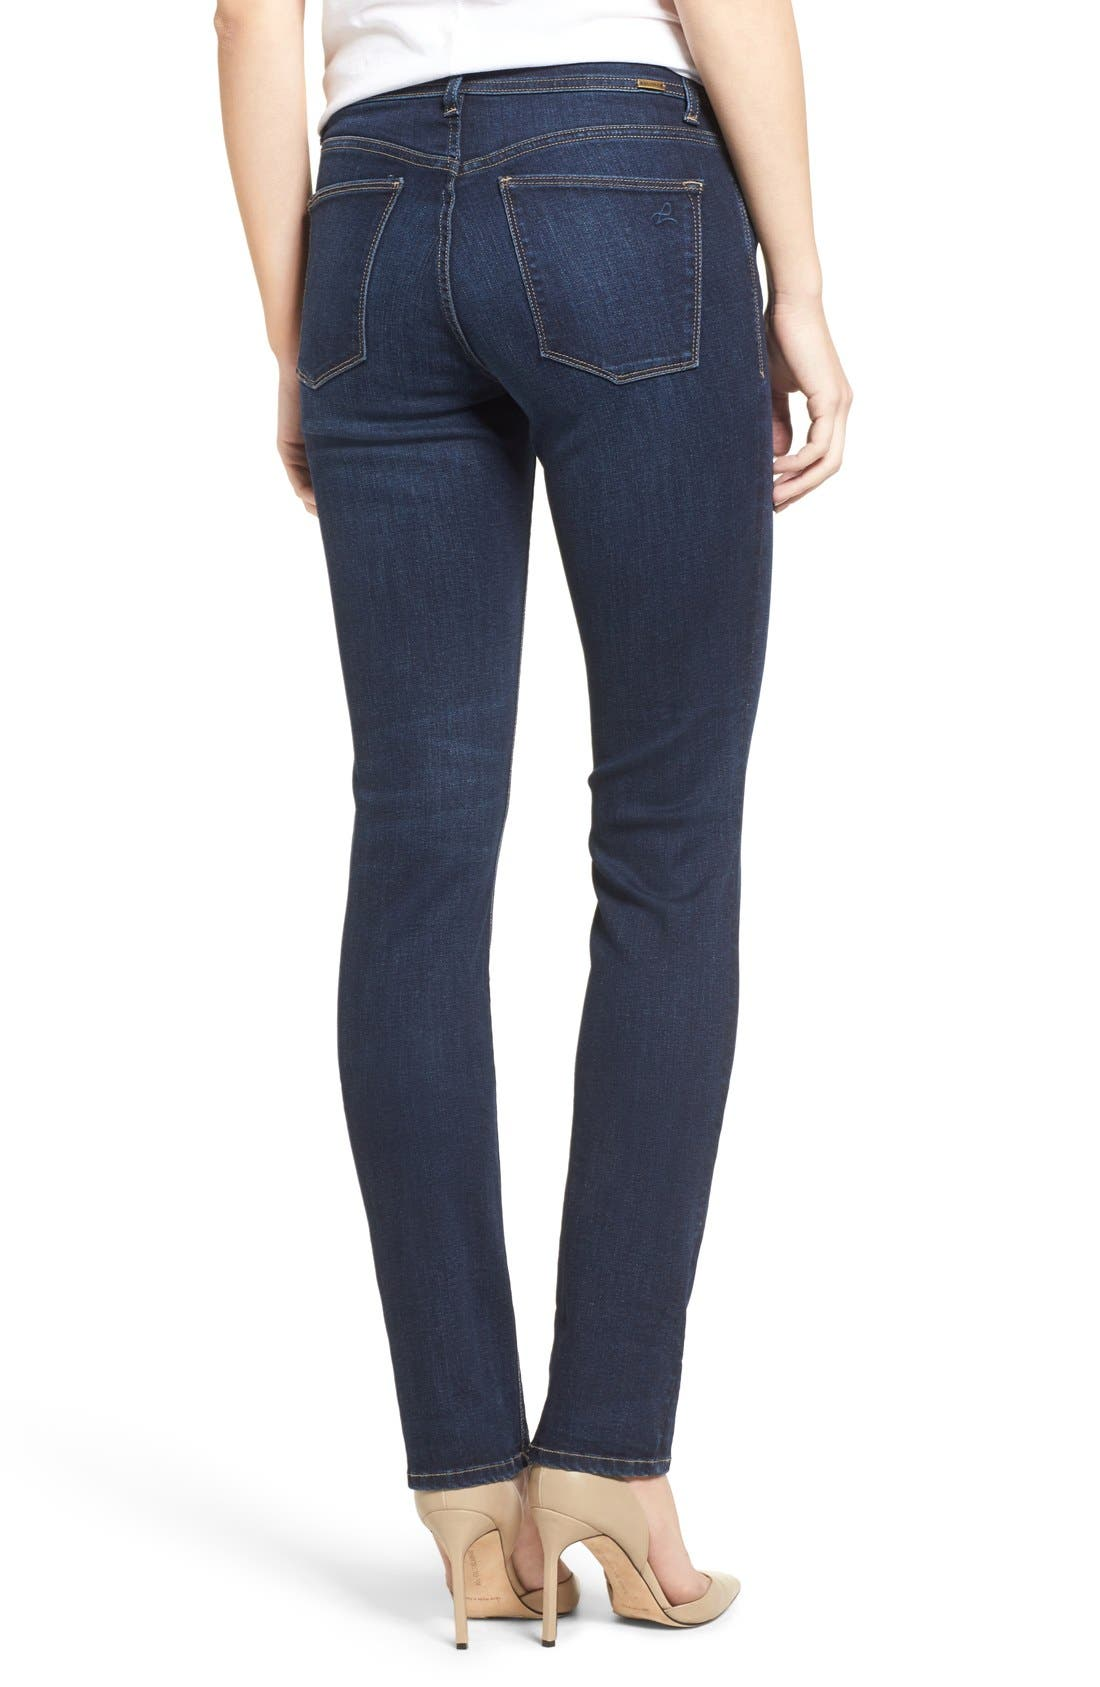 'Coco' Curvy Slim Straight Leg Jeans,                             Alternate thumbnail 7, color,